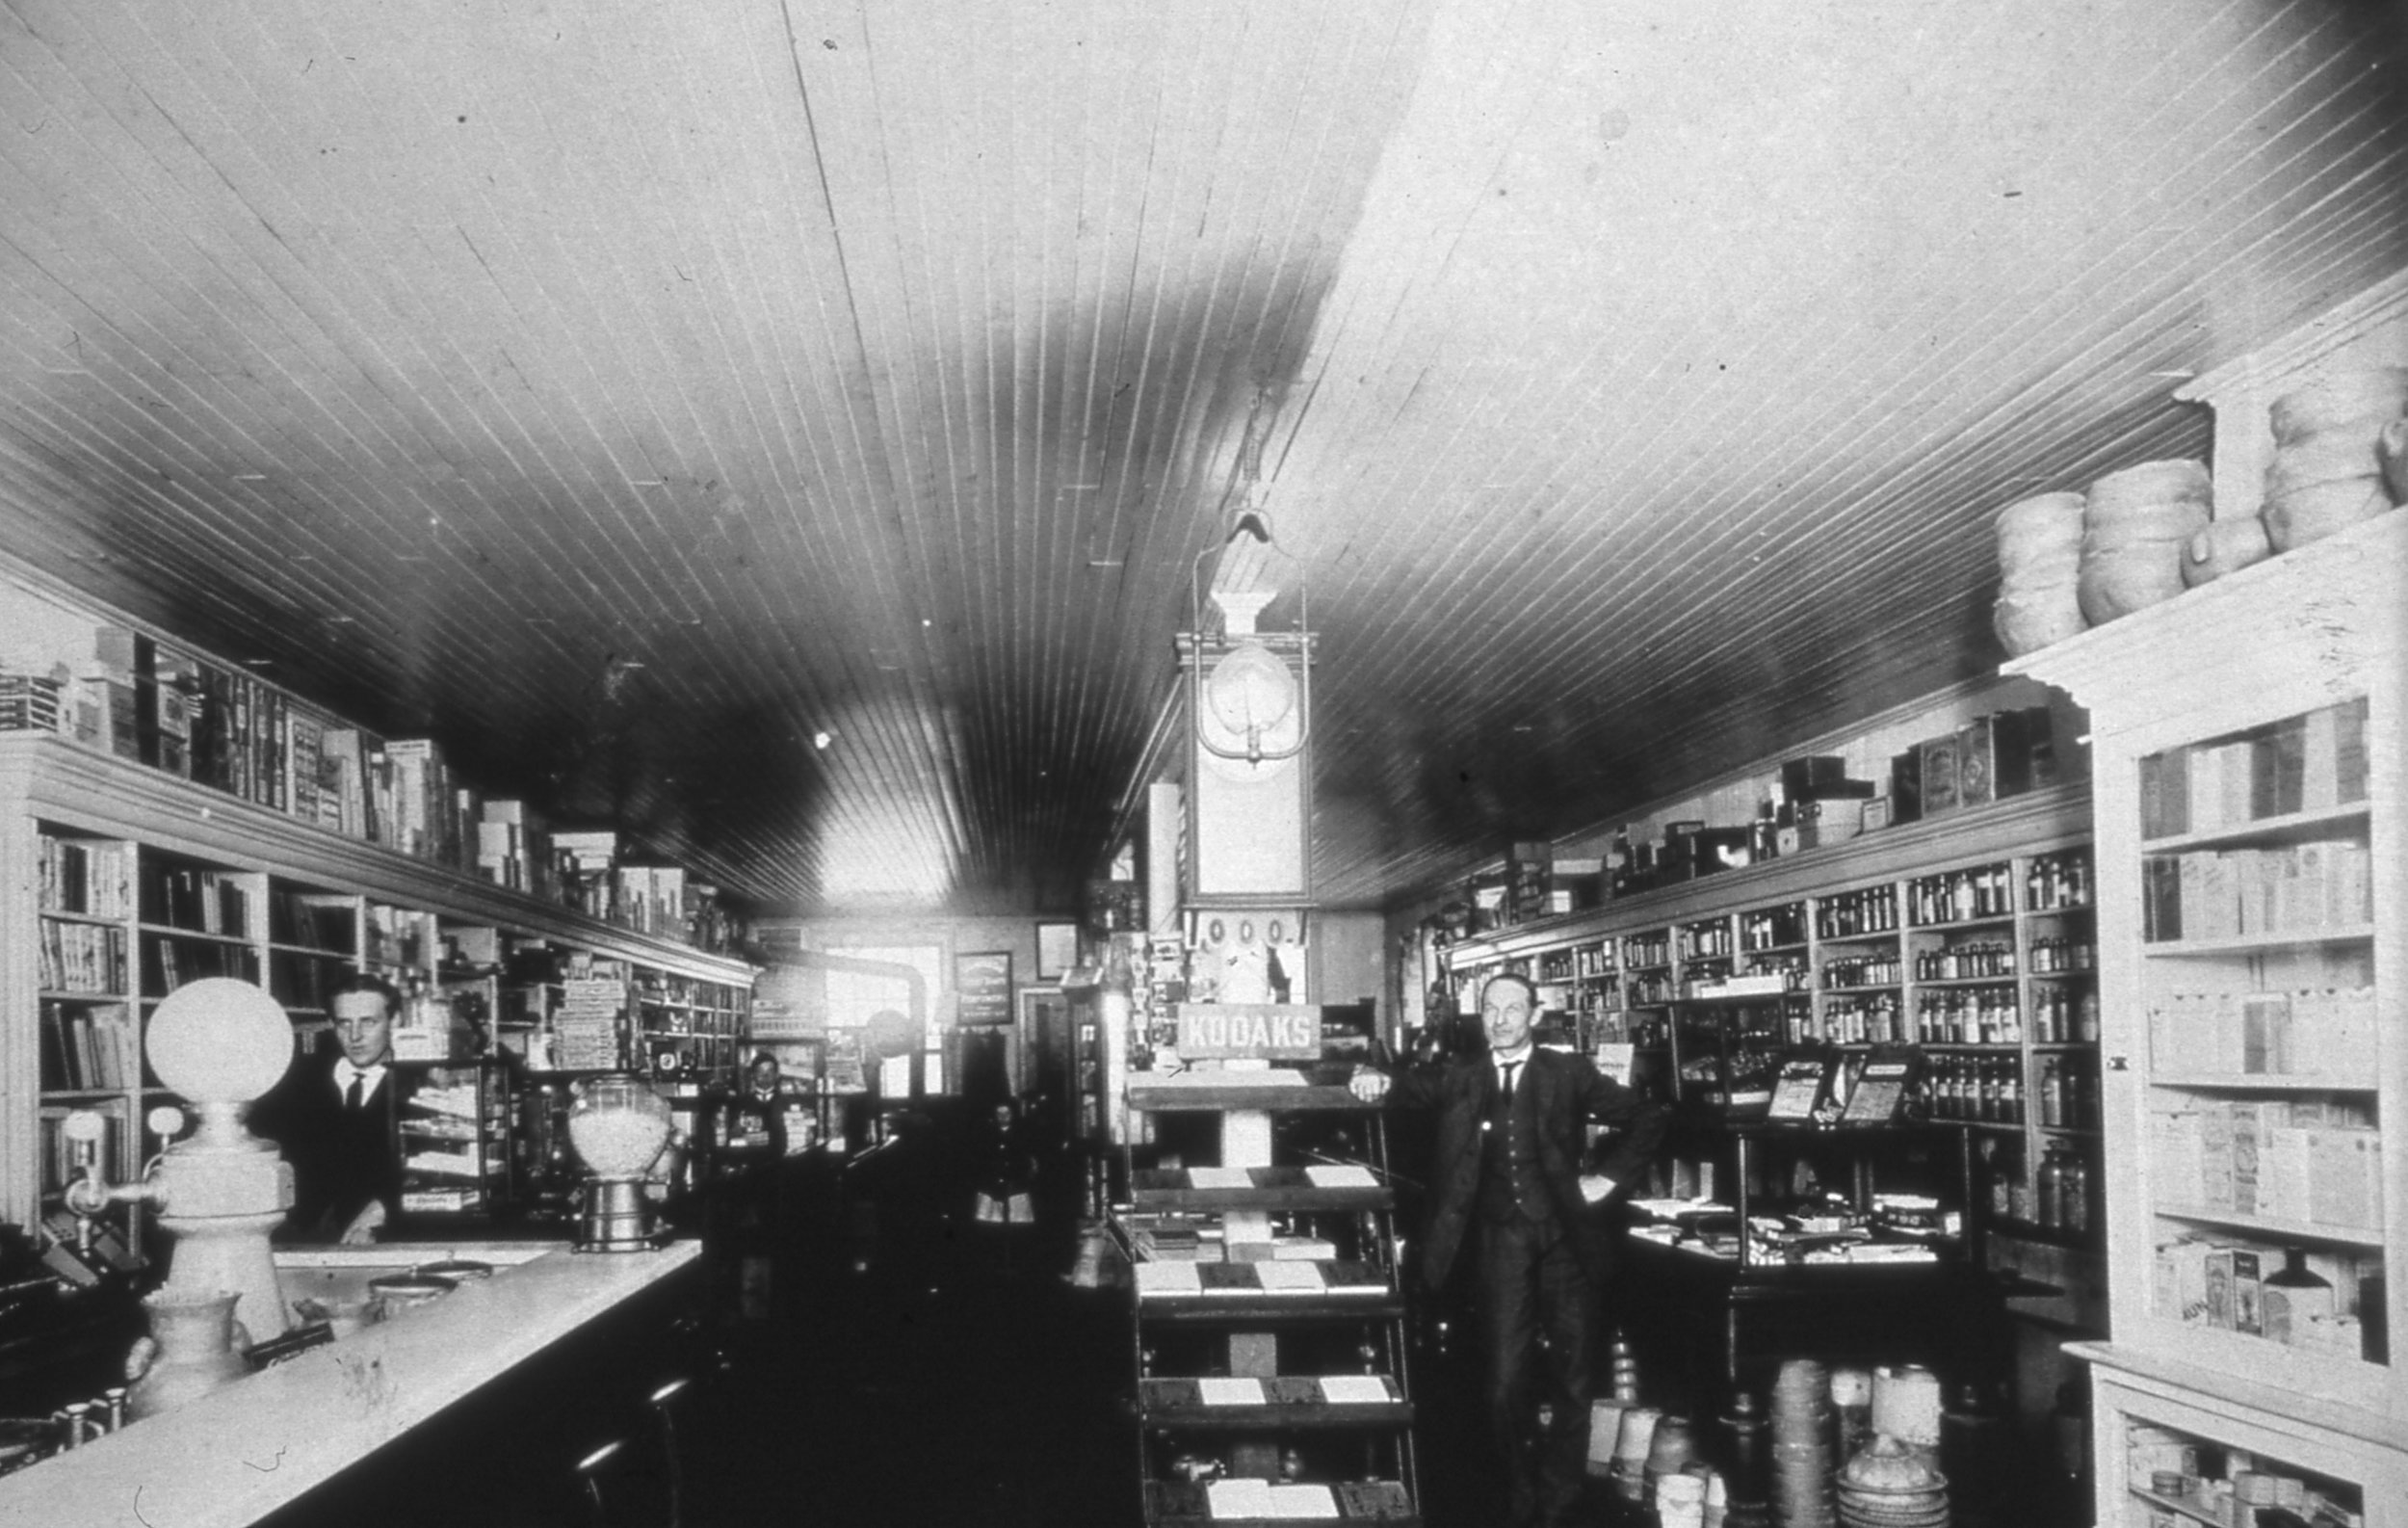 """W.B. Ardrey inside his drug store in 1912. The Fort Mill Times ran an article on Sept. 9, 1903, stating - """"Robert Boggus, the widely known and well respected shoe maker has opened a boot and shoe shop over Ardrey's drug store."""""""